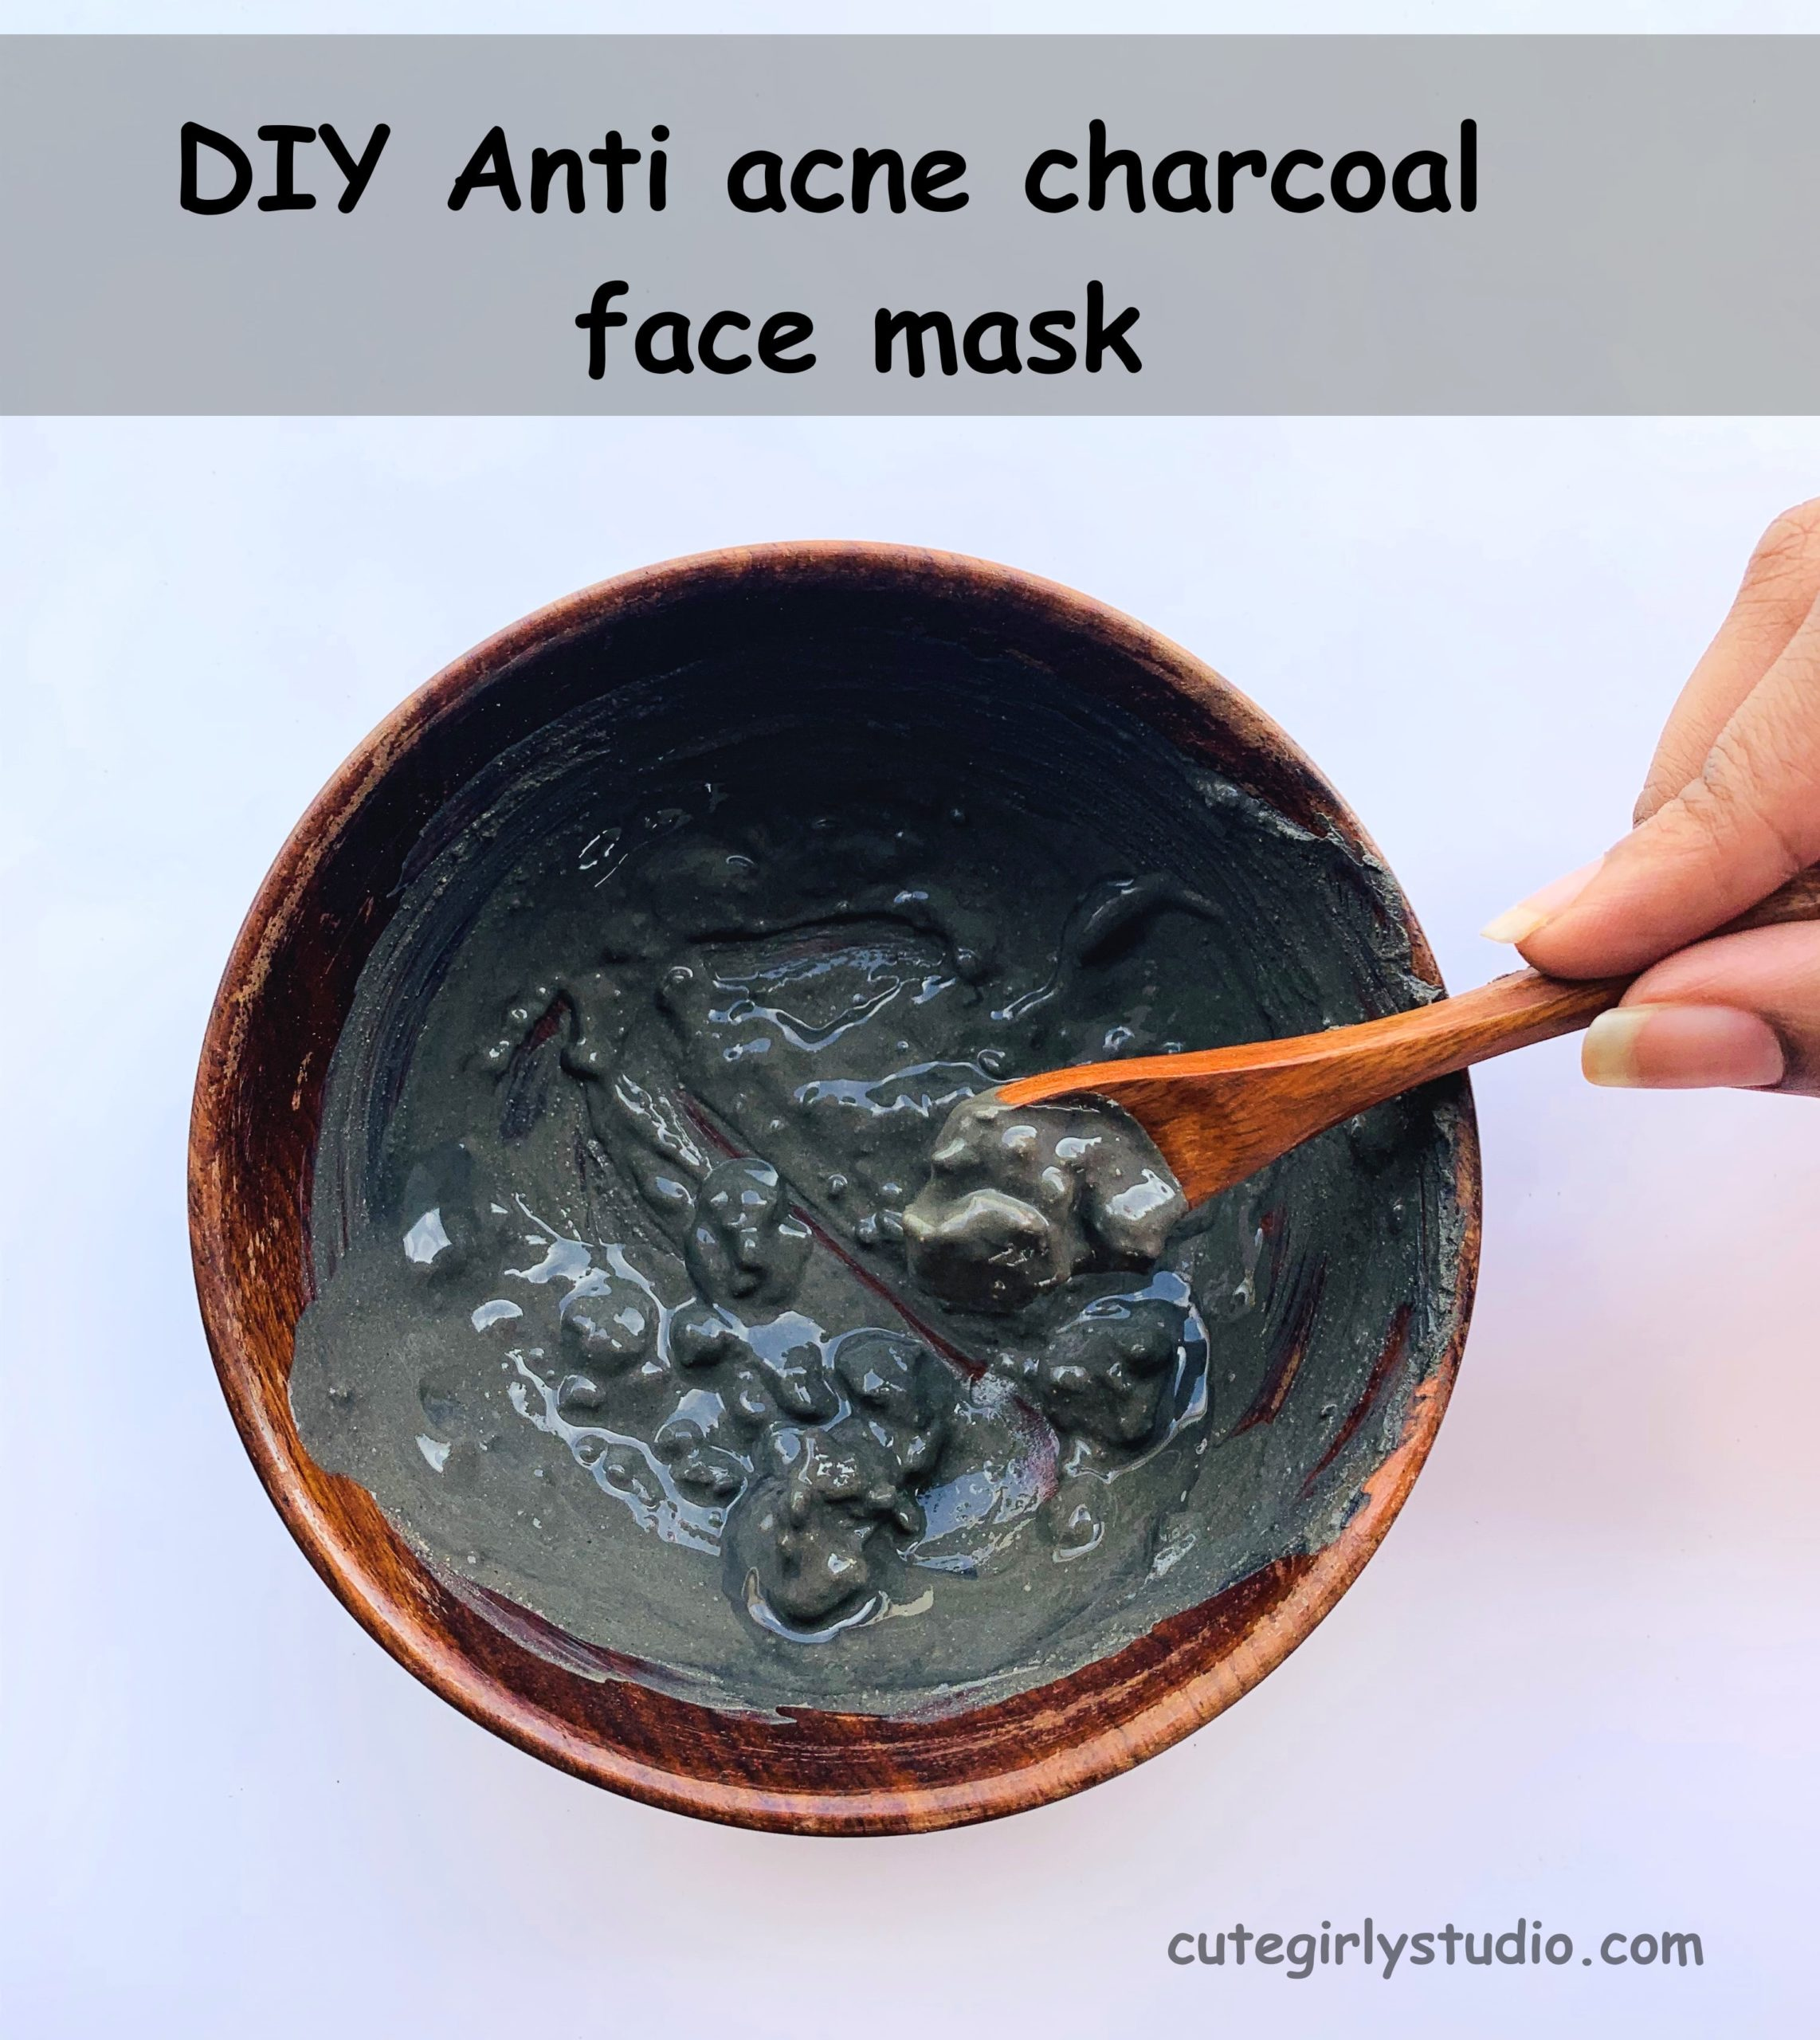 DIY Anti acne charcoal face mask